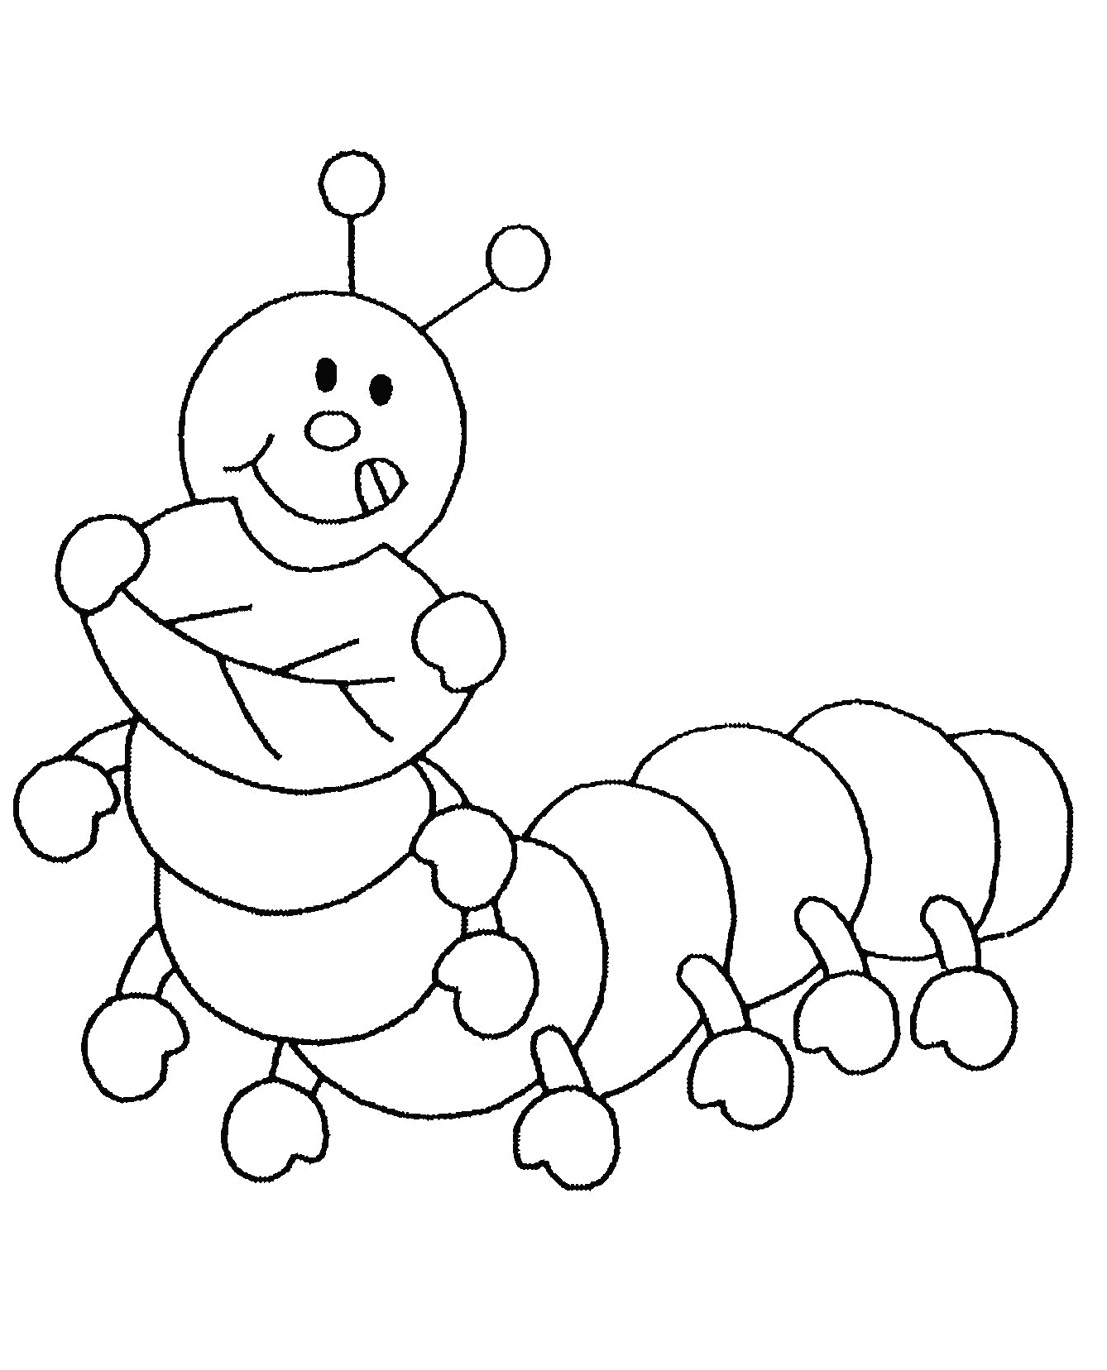 insect coloring pictures free printable bug coloring pages for kids insect pictures coloring